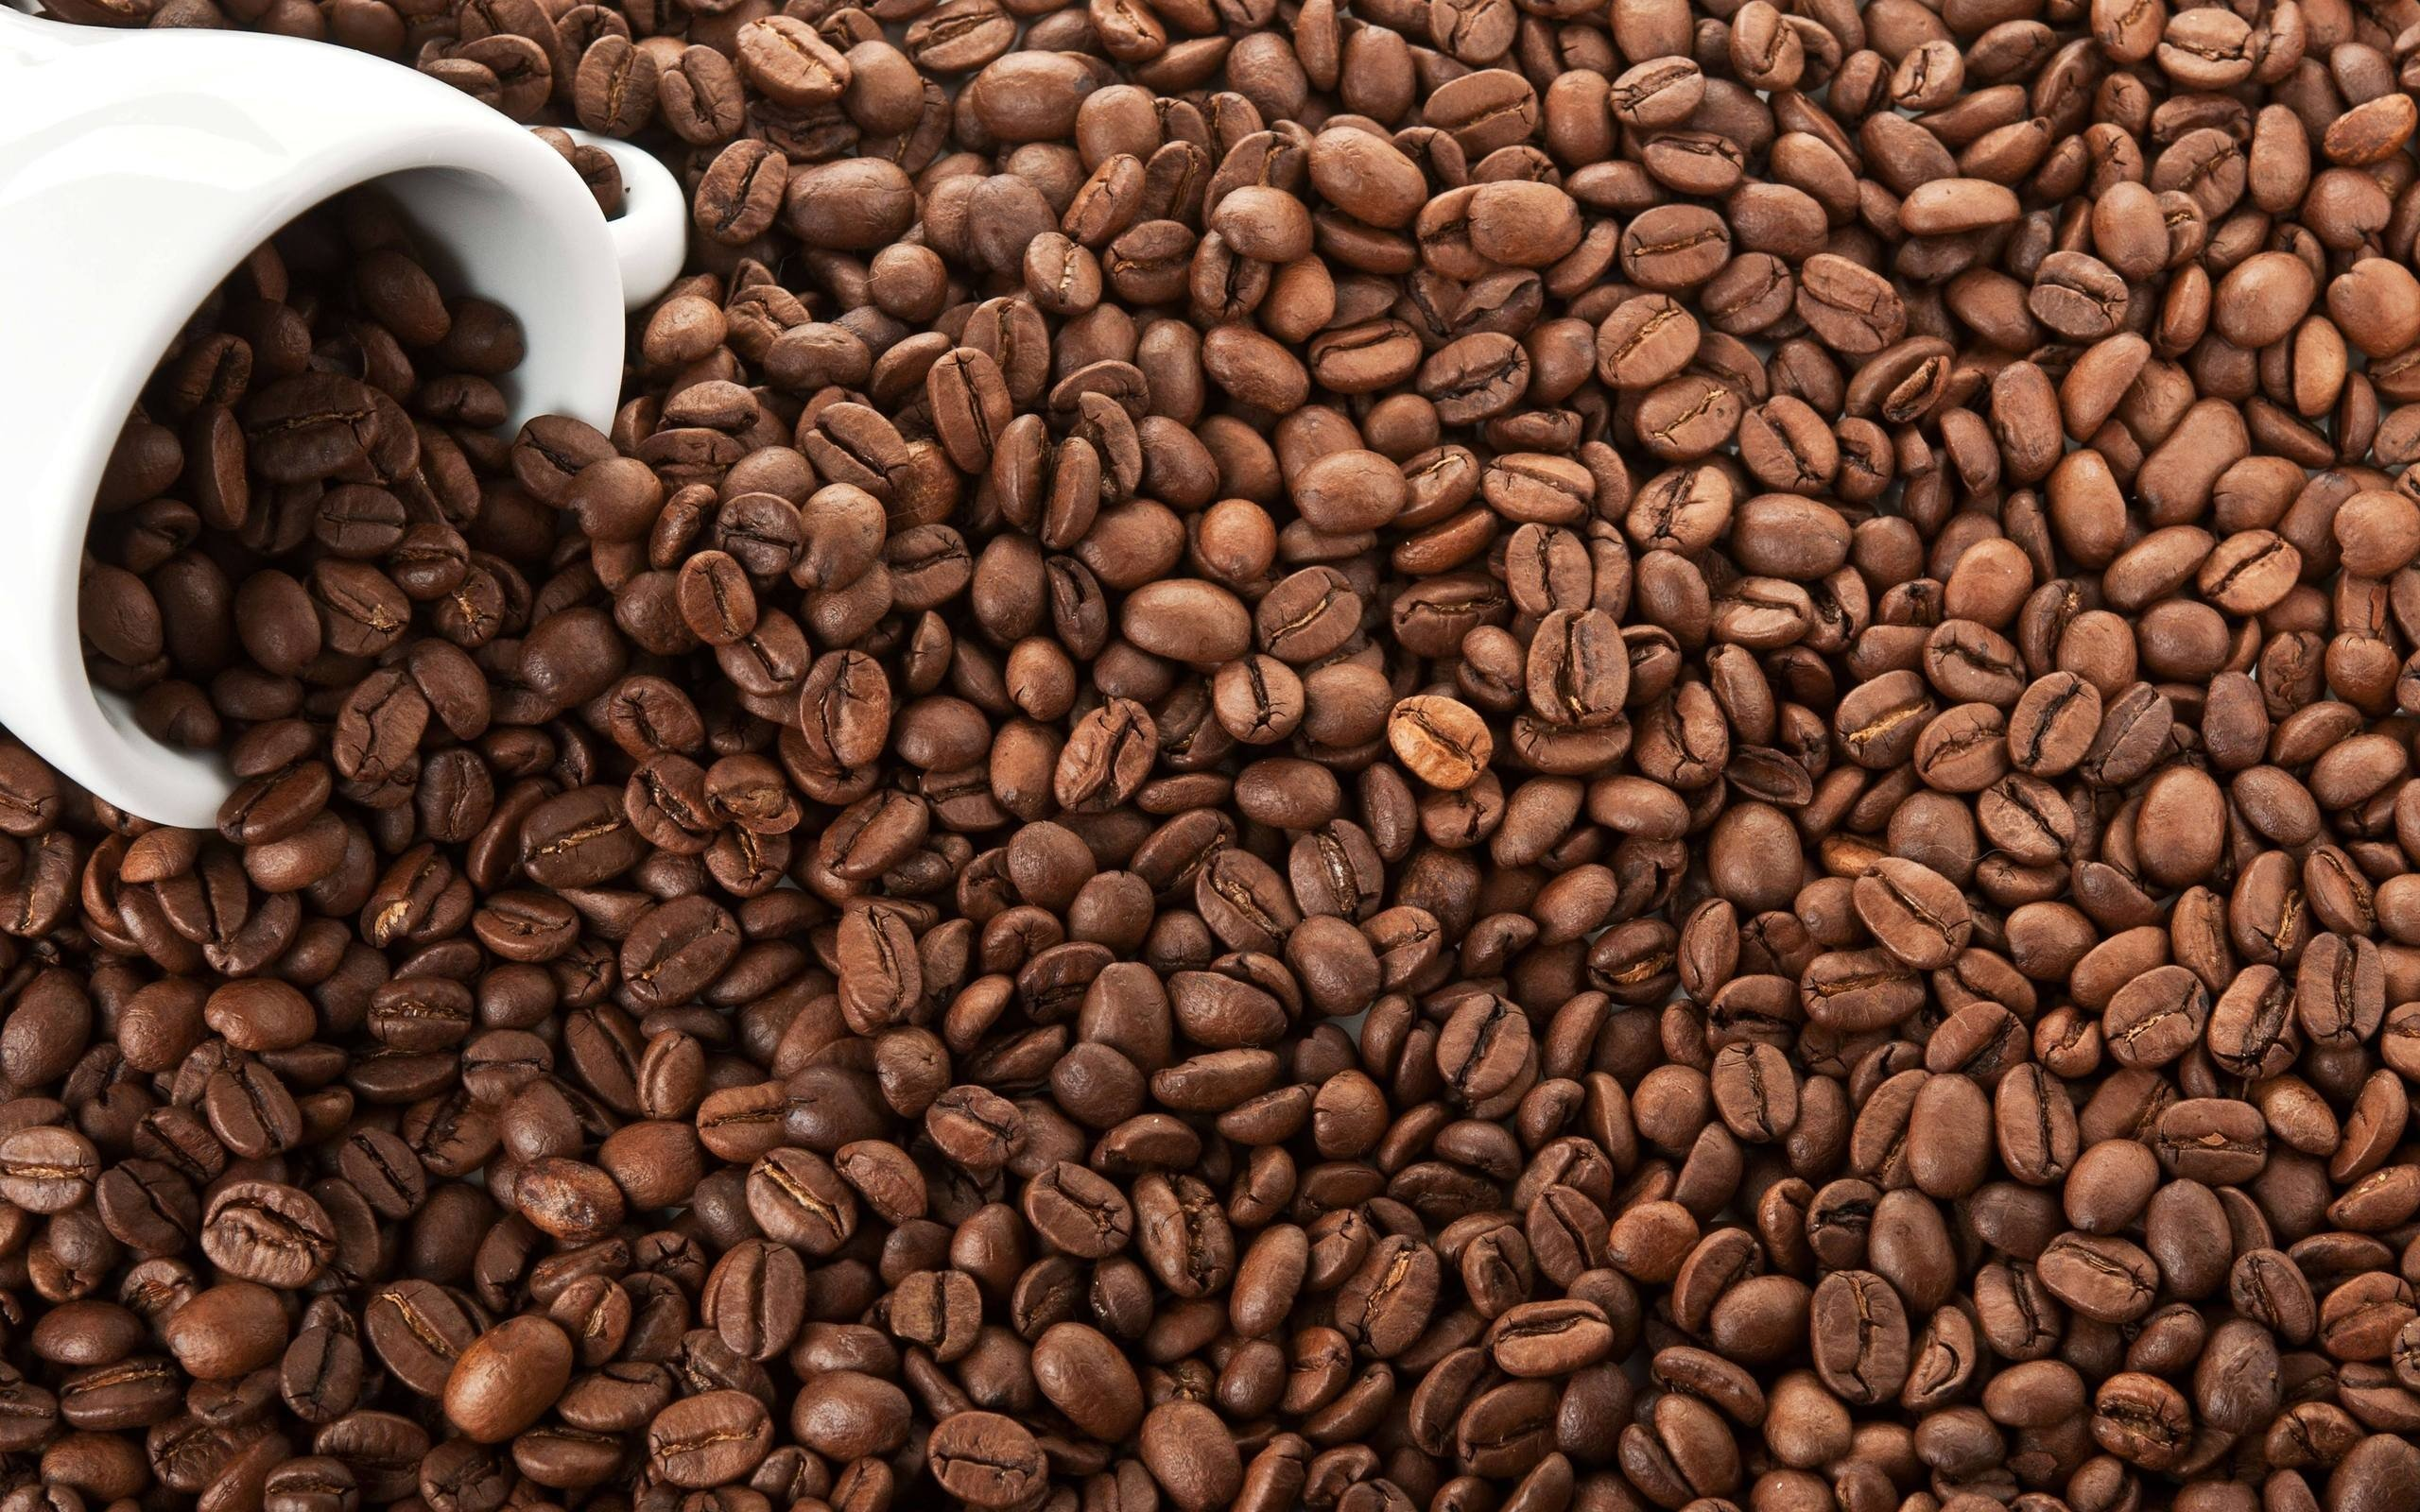 Coffee coffee beans wallpaper | 2560x1600 | 256837 ...